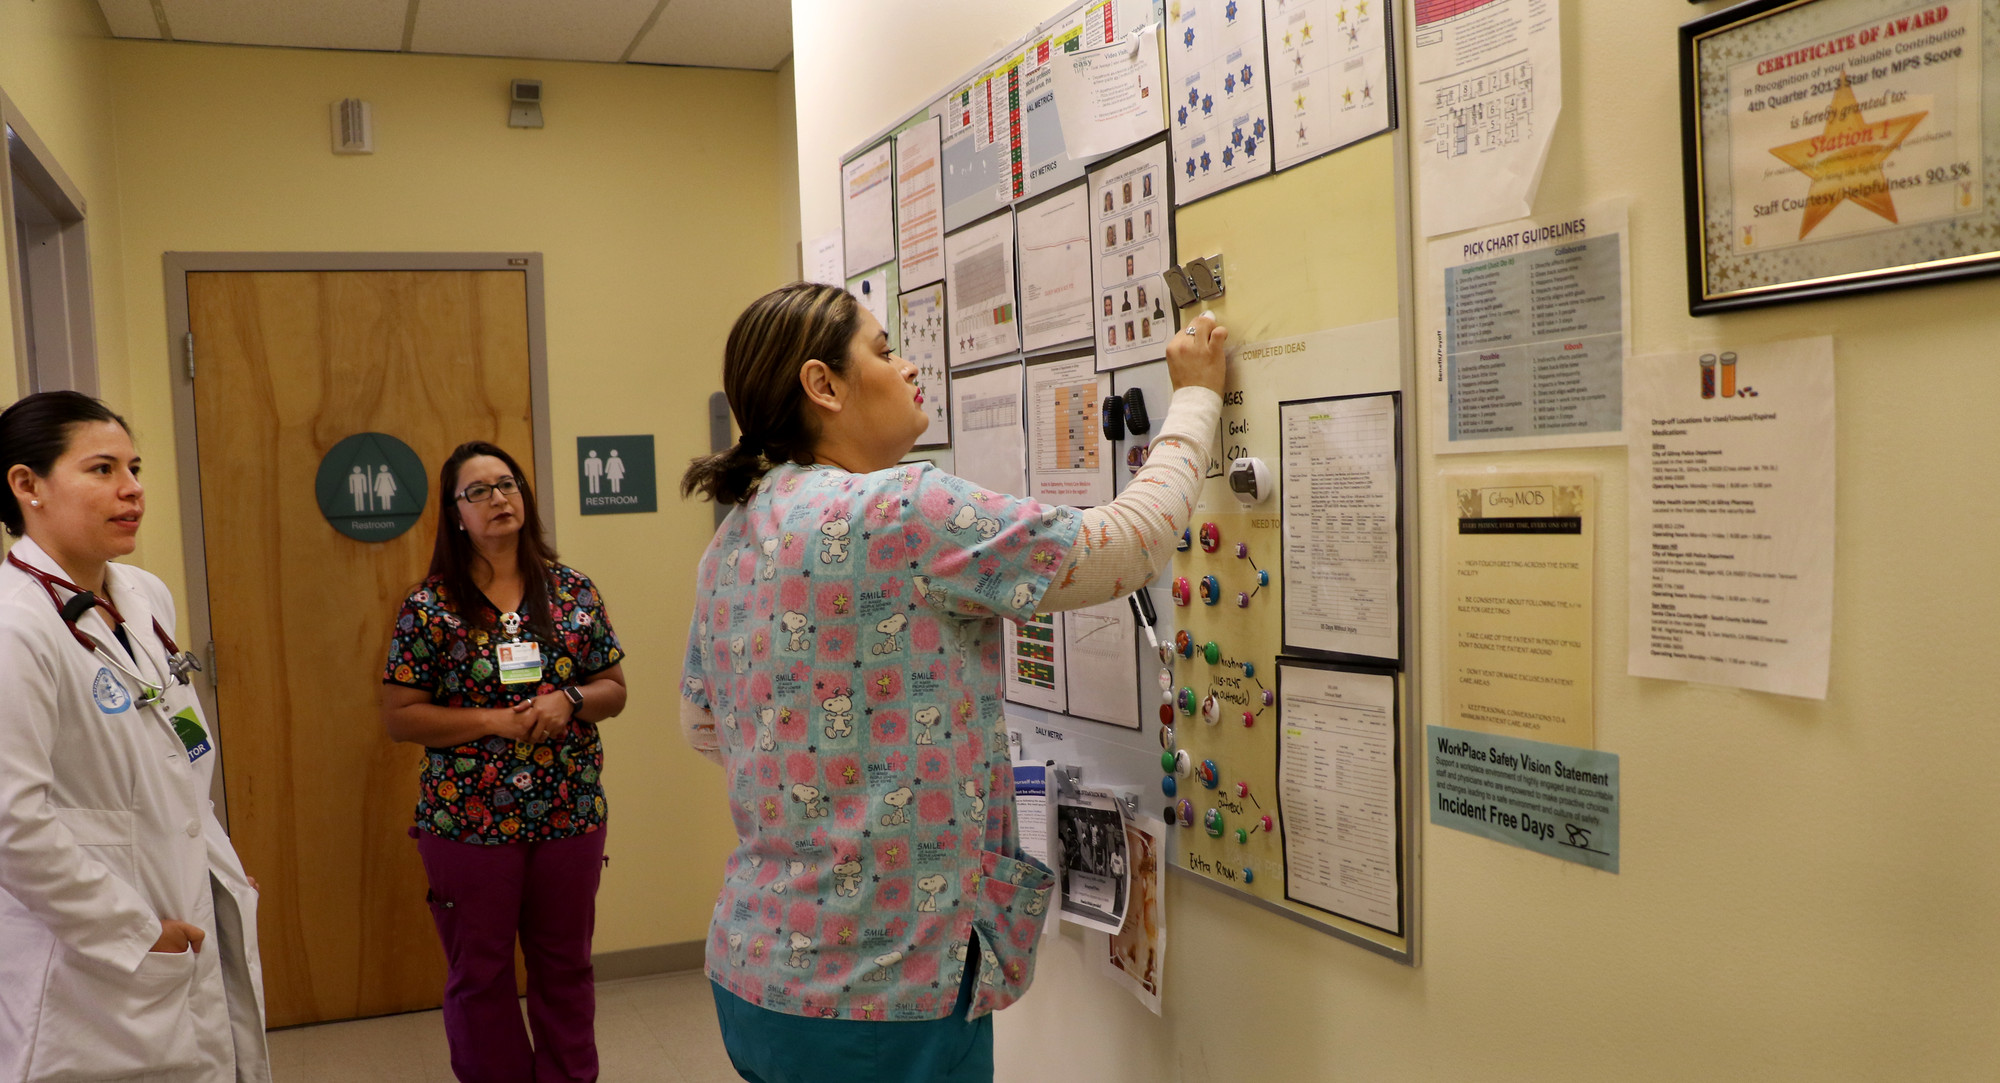 Health care workers filling in a huddle board in a clinic hallway